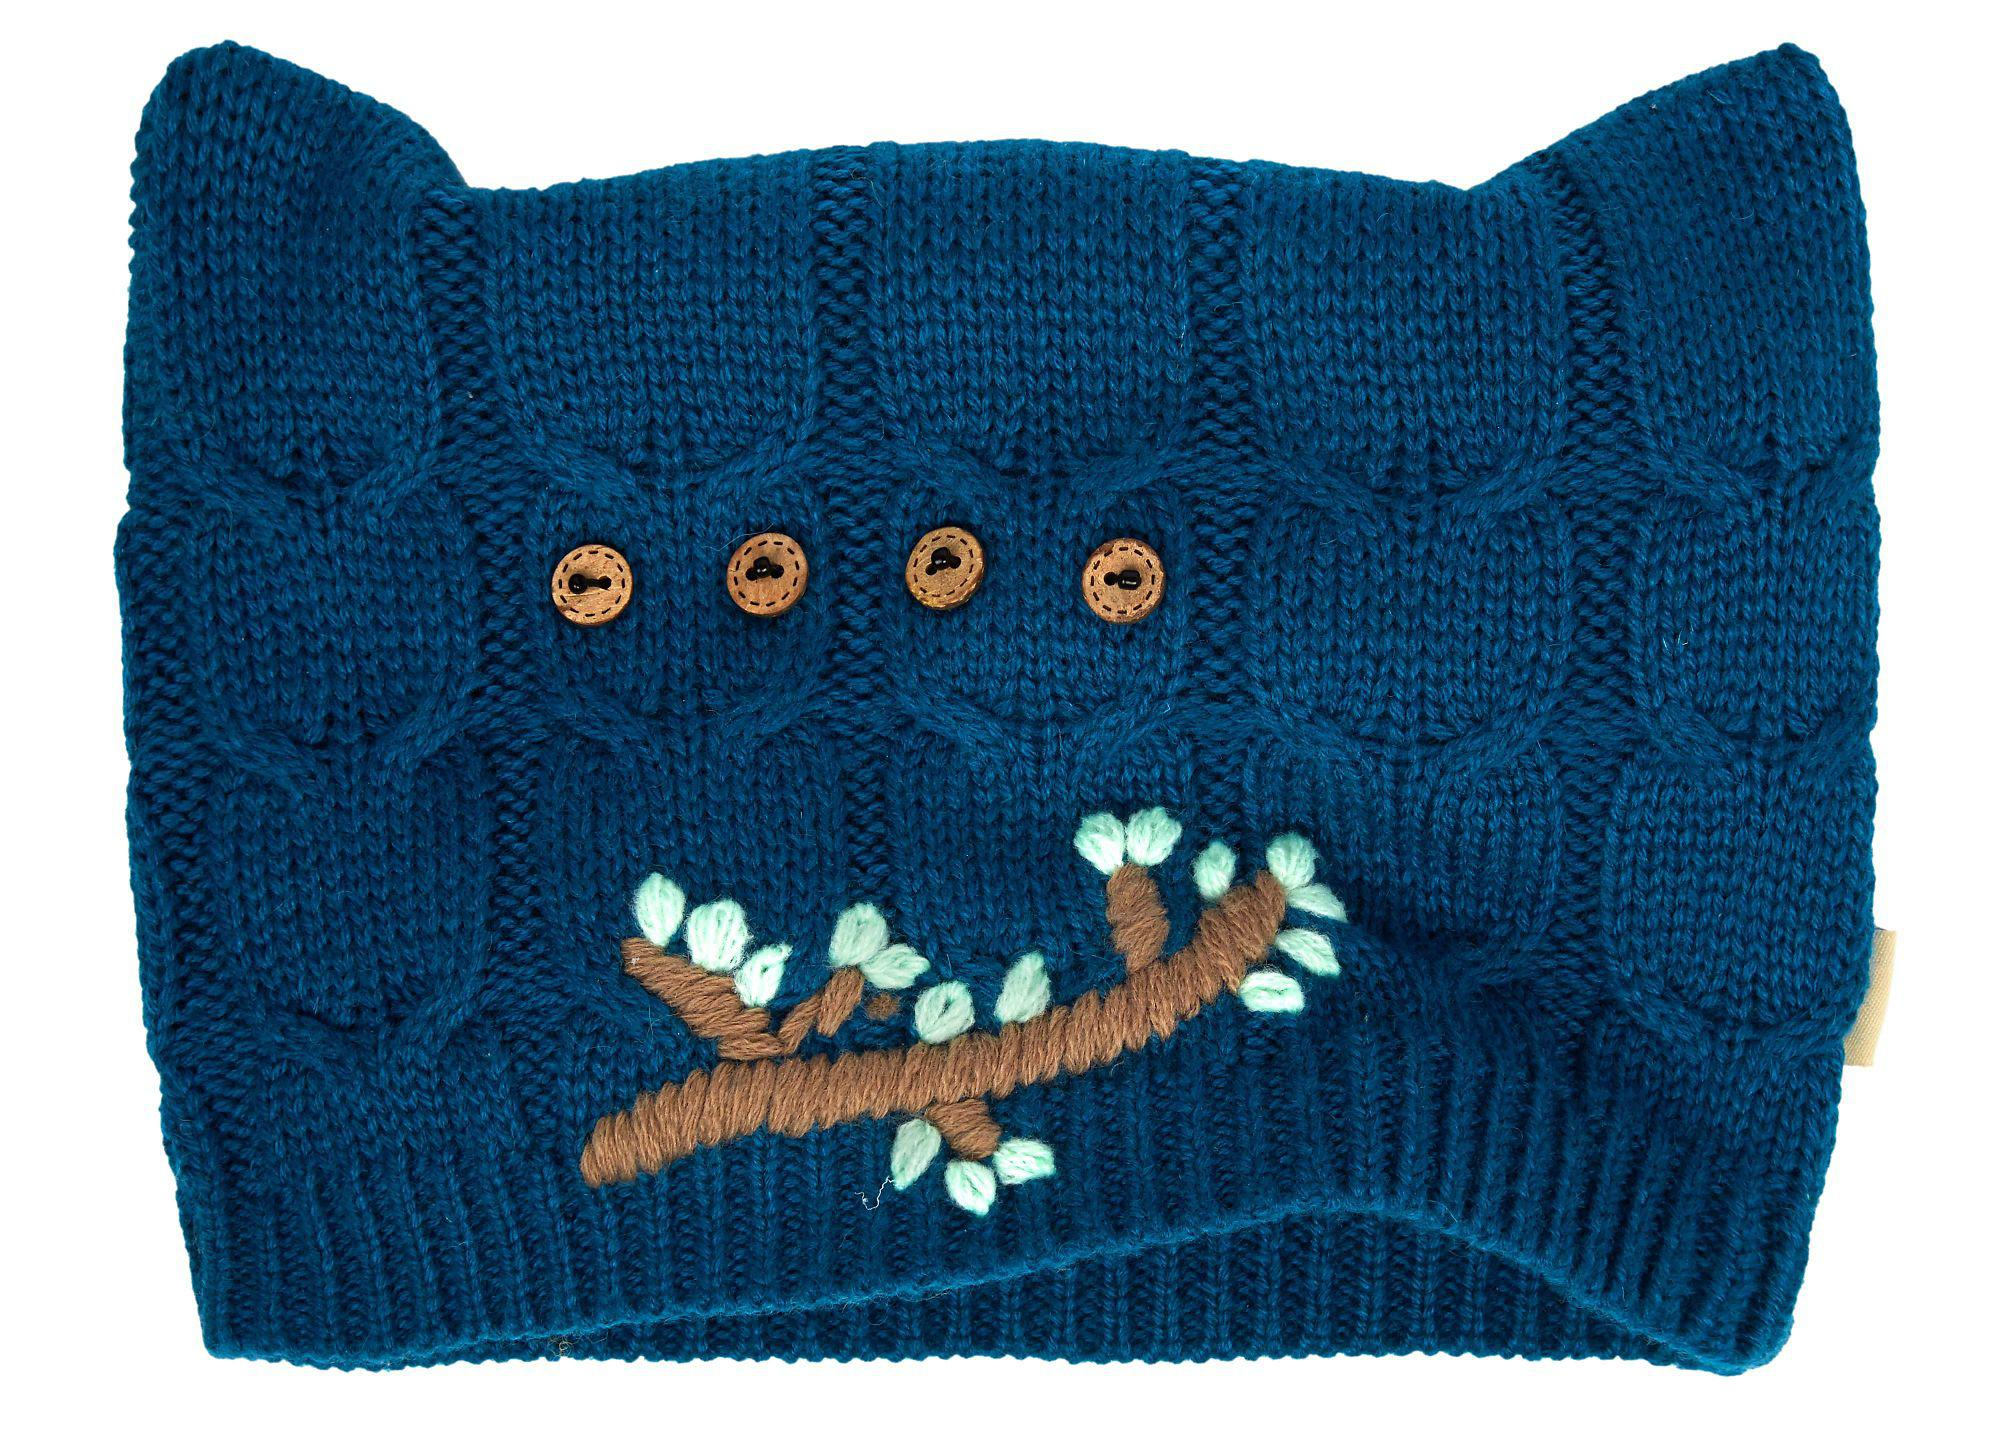 1b6e863f184 Yumi  Blue Embroidered Owl Knitted Hat in Blue - Lyst